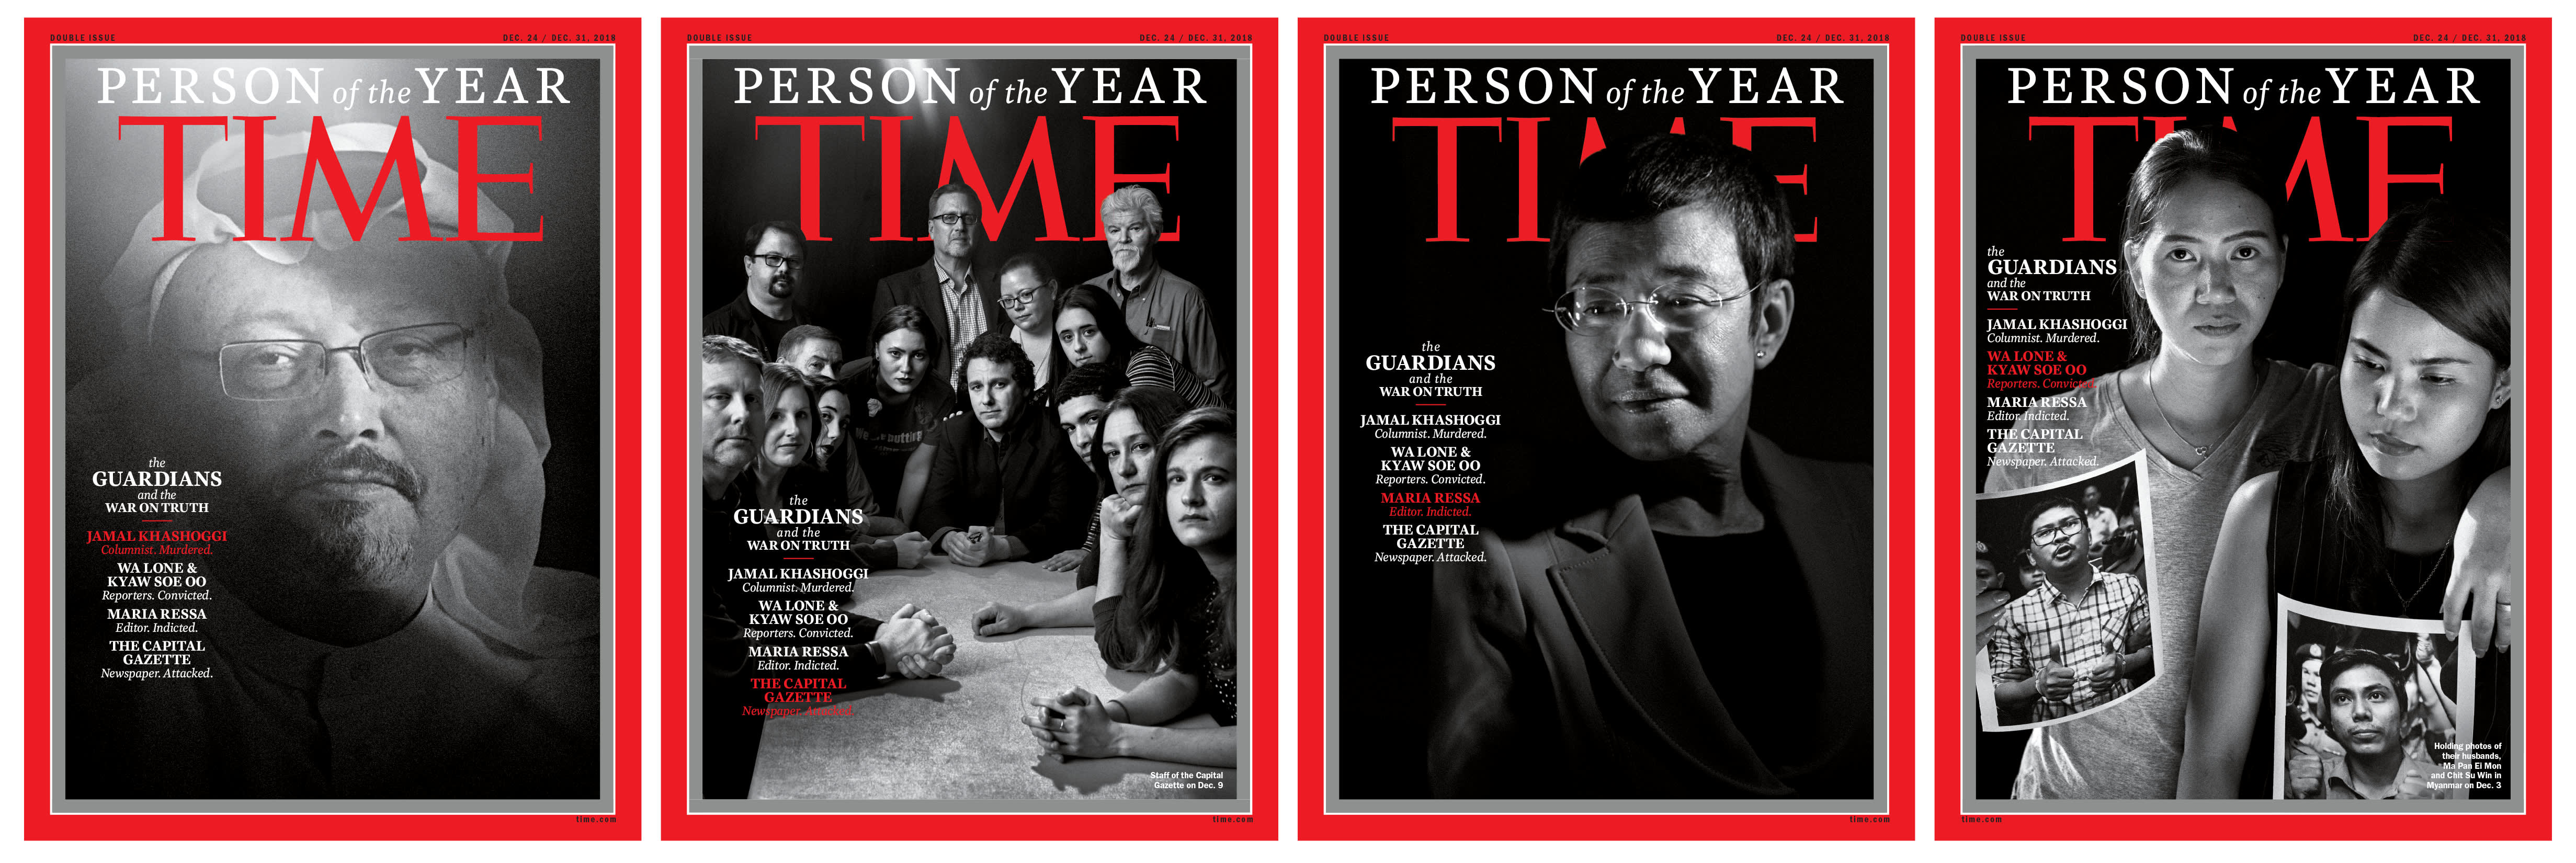 TIME Person of the year 2018 Journalists